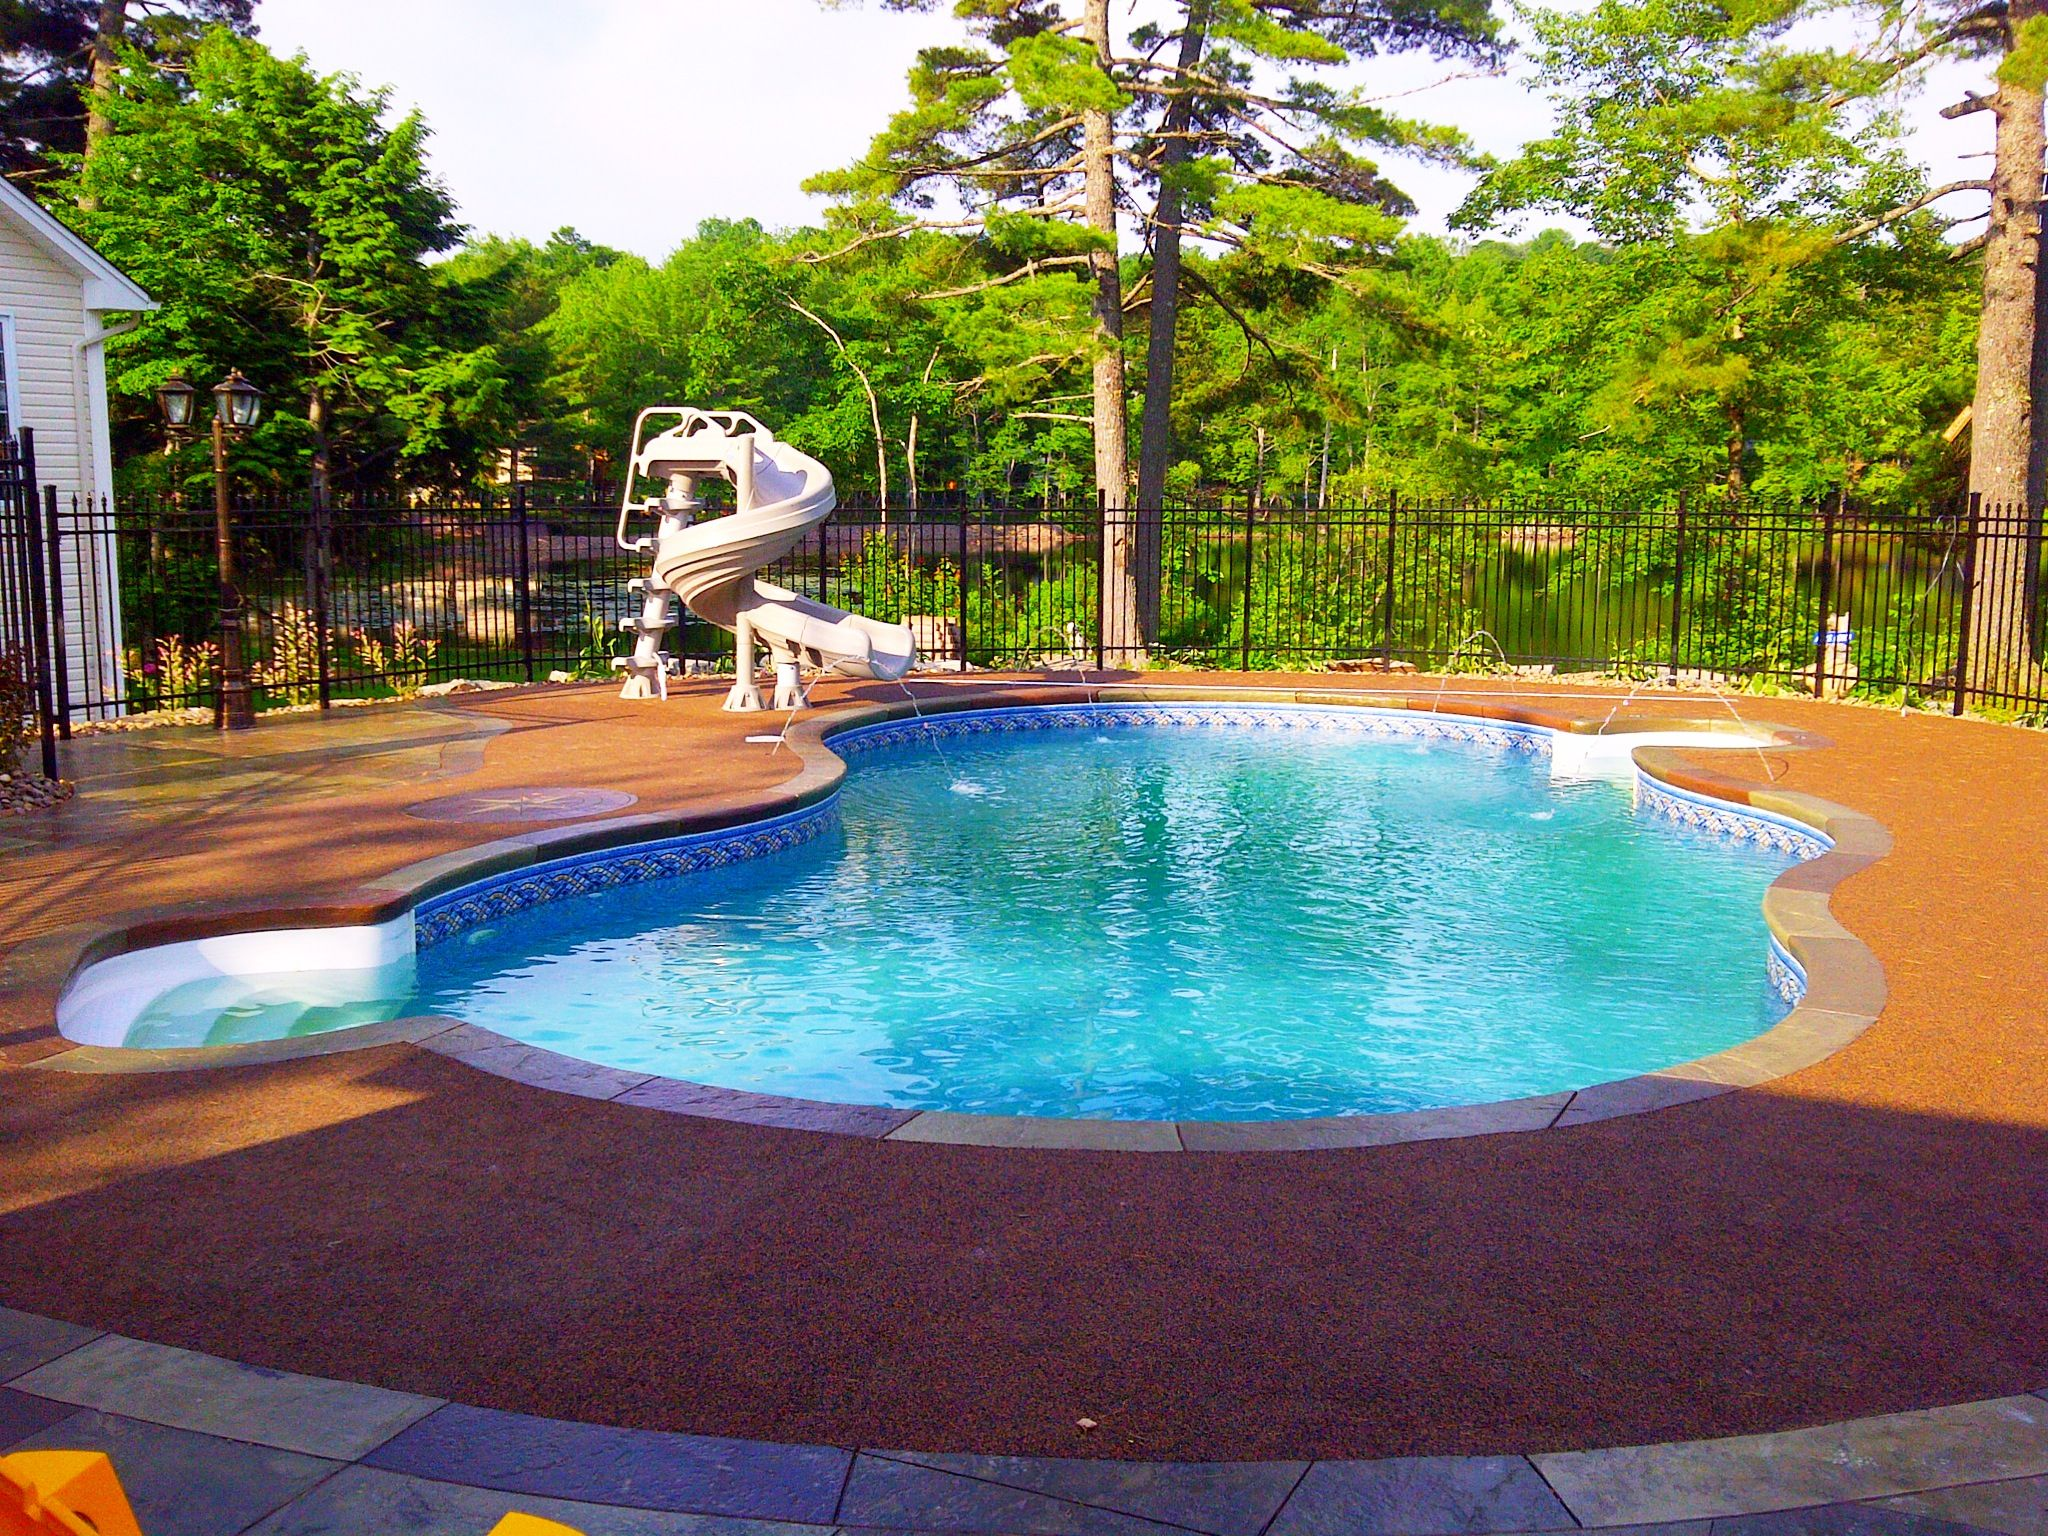 Best Pool Design Images On Pinterest Pool Designs Swimming